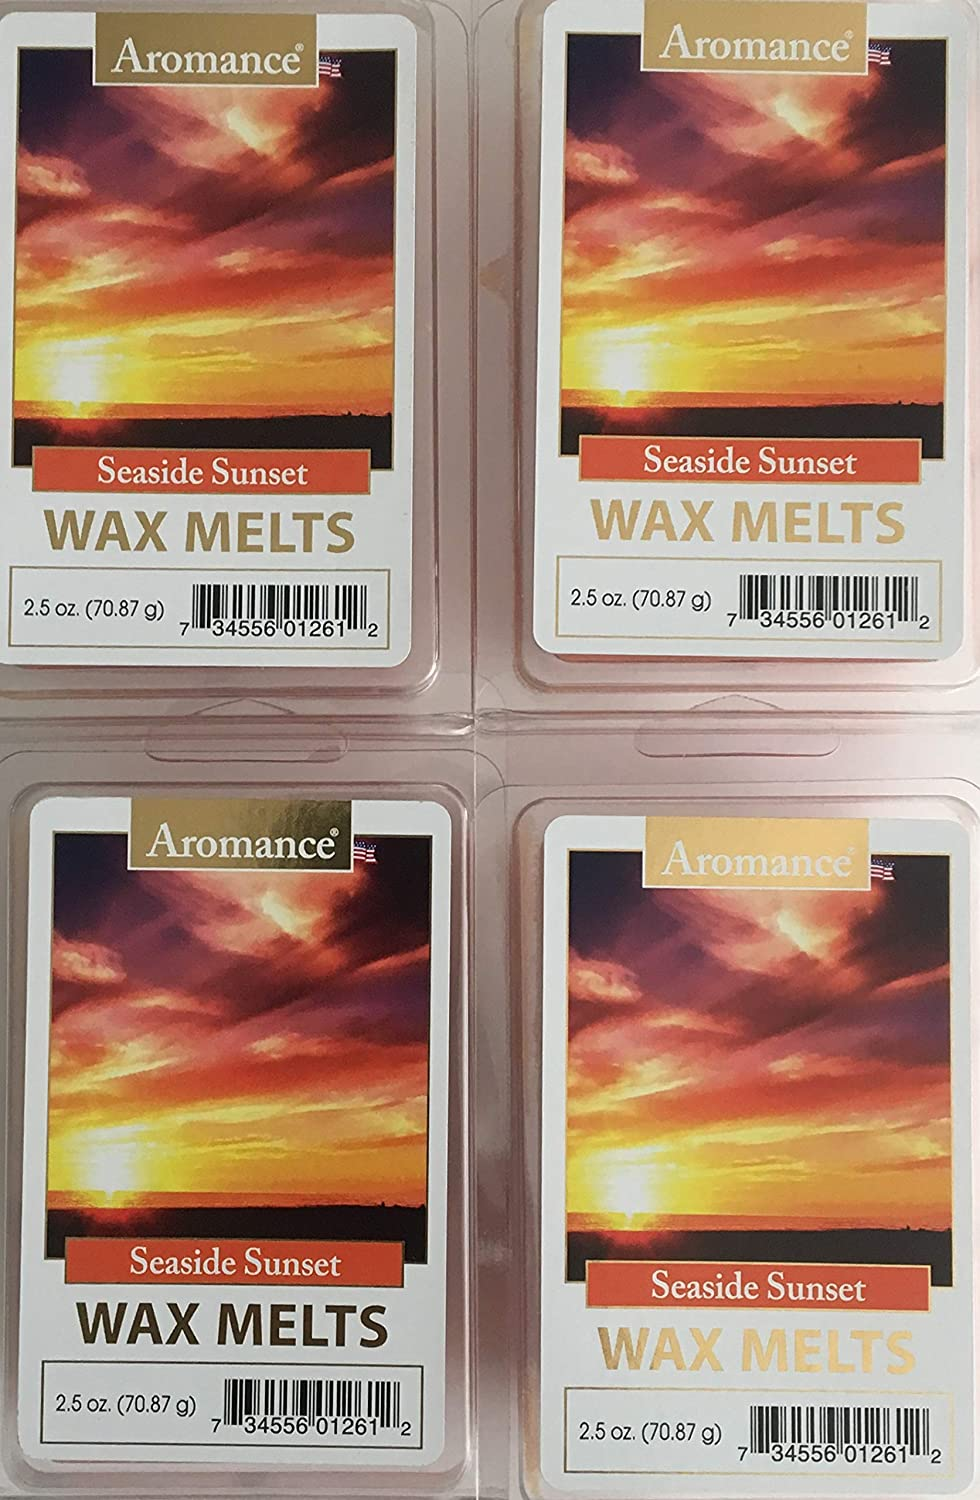 Pack of 4 Aromance Seaside Sunset Wax Melts